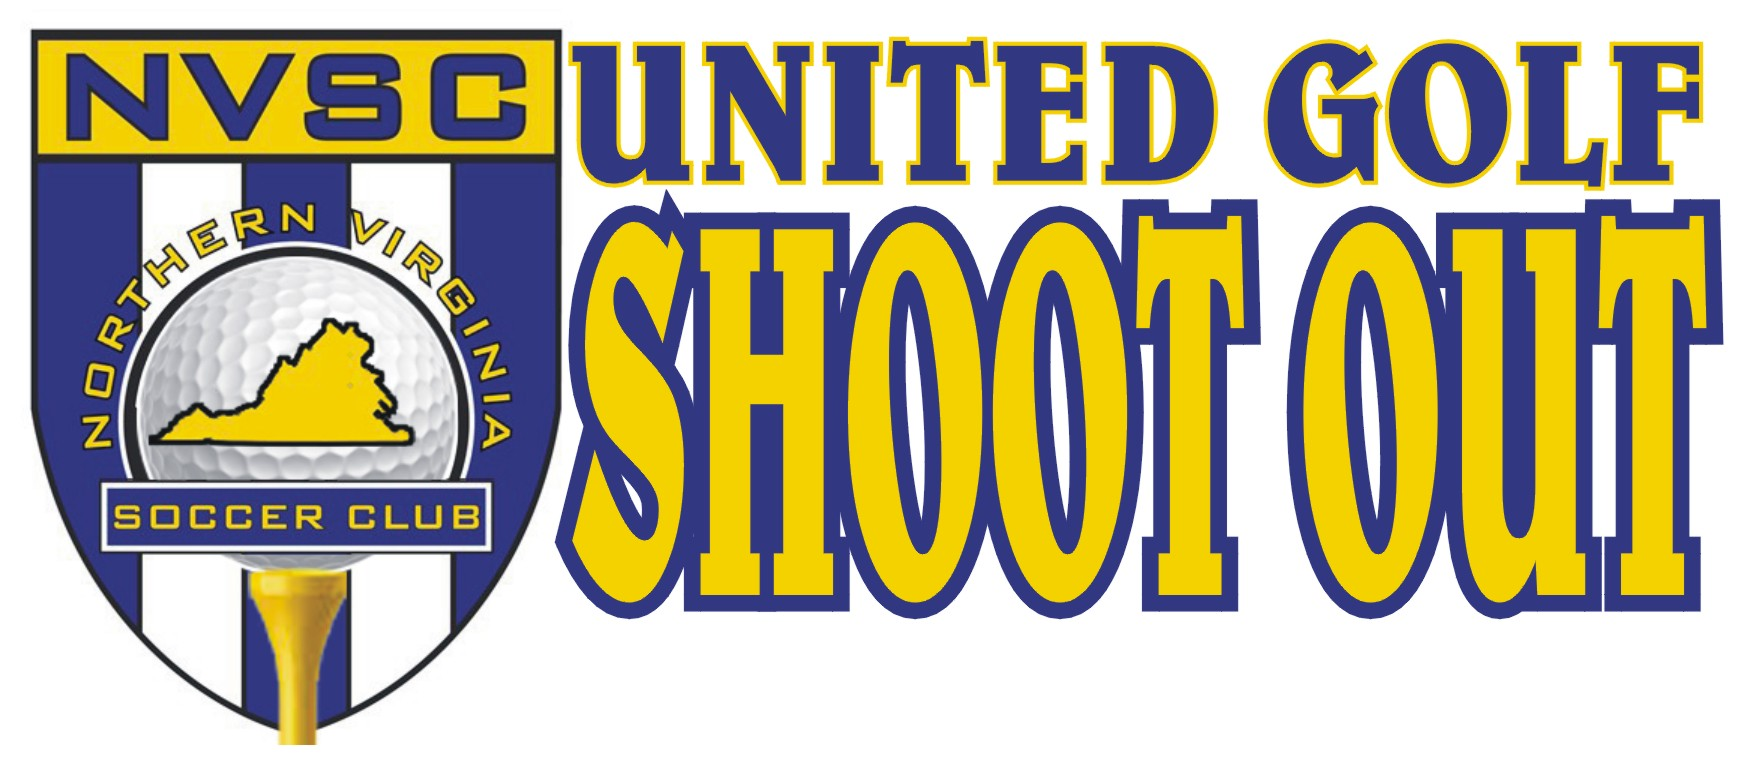 NVSC United Golf Shoot Out